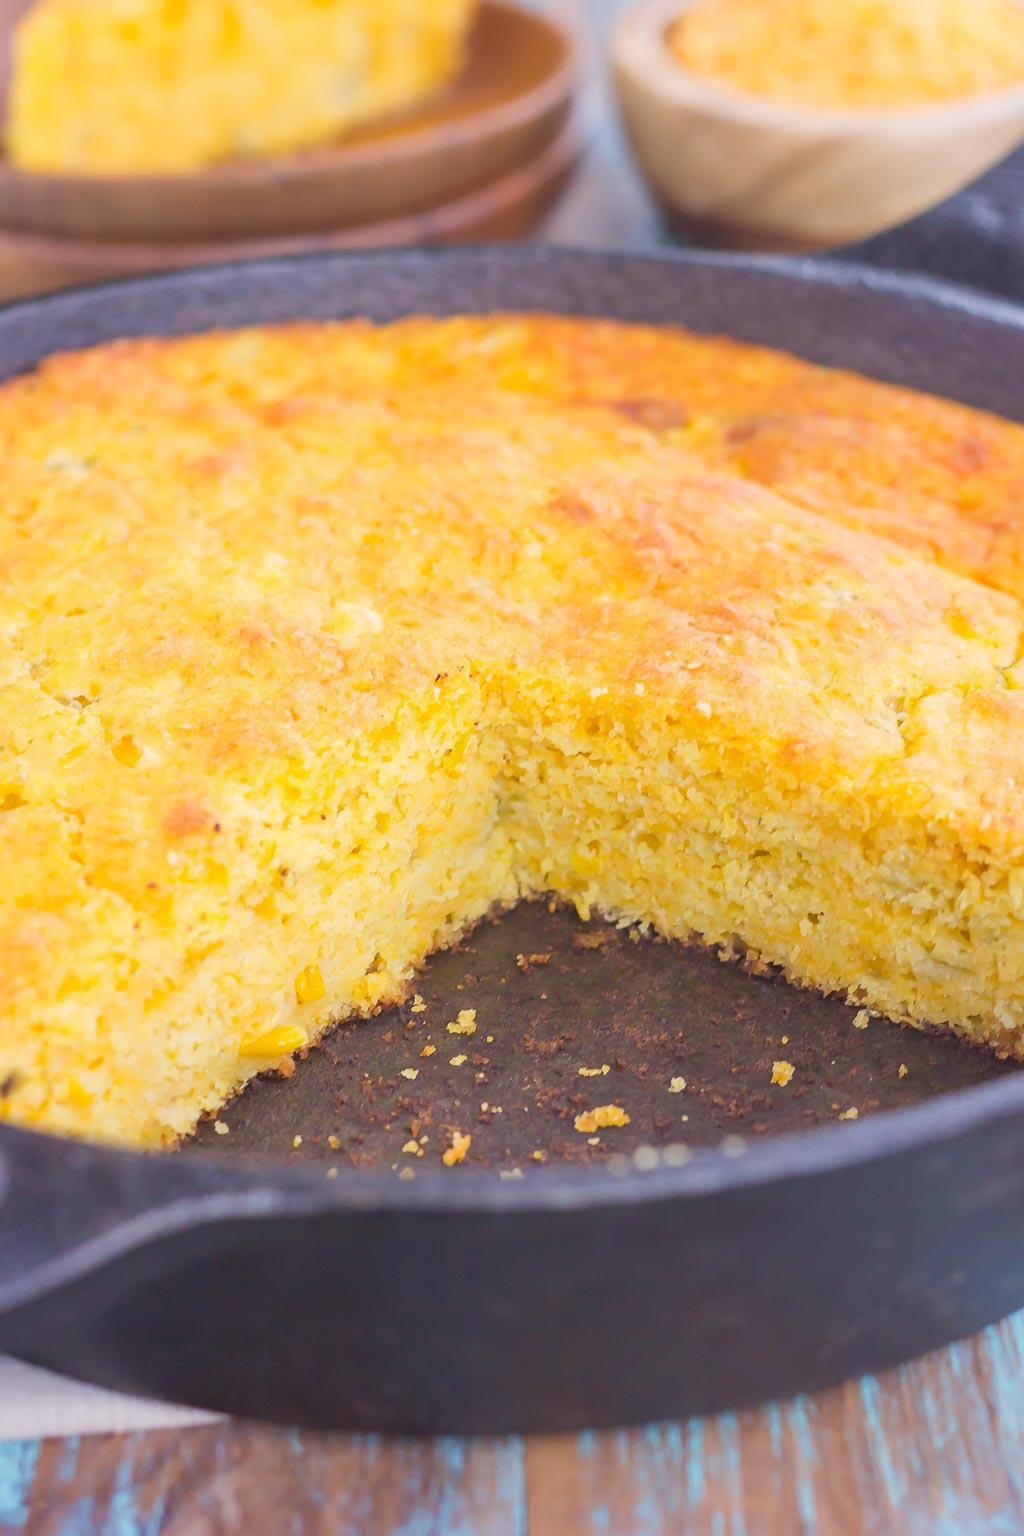 This Southwest Skillet Cornbread is the perfect combination of sweet and spicy that will be a favorite for years to come. Loaded with cheddar cheese, green chiles, and creamed corned, this easy cornbread bakes up moist, tender, and full of flavor!